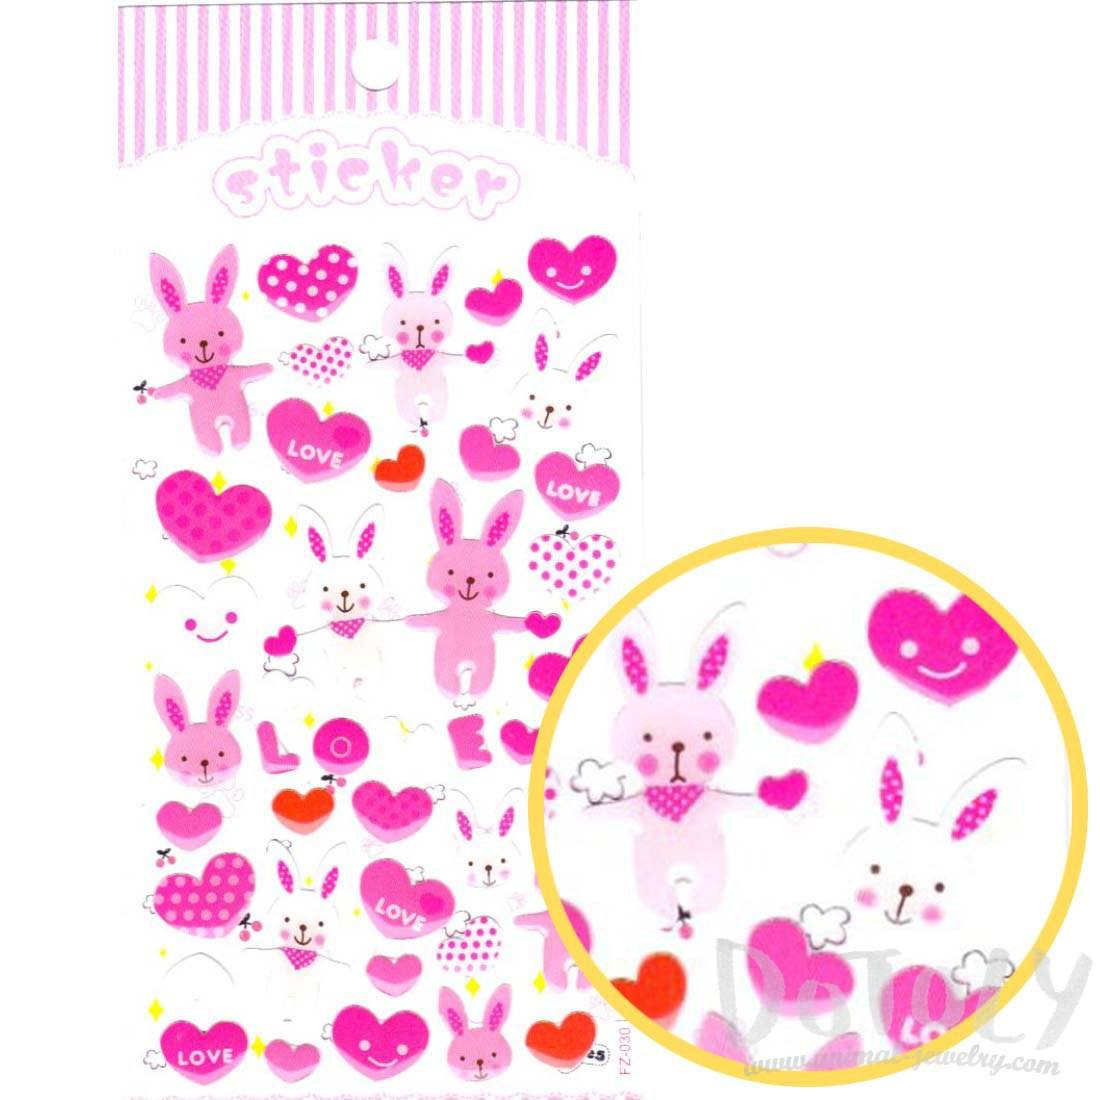 Cartoon Bunny Rabbits and Heart Shaped Stickers in Pink